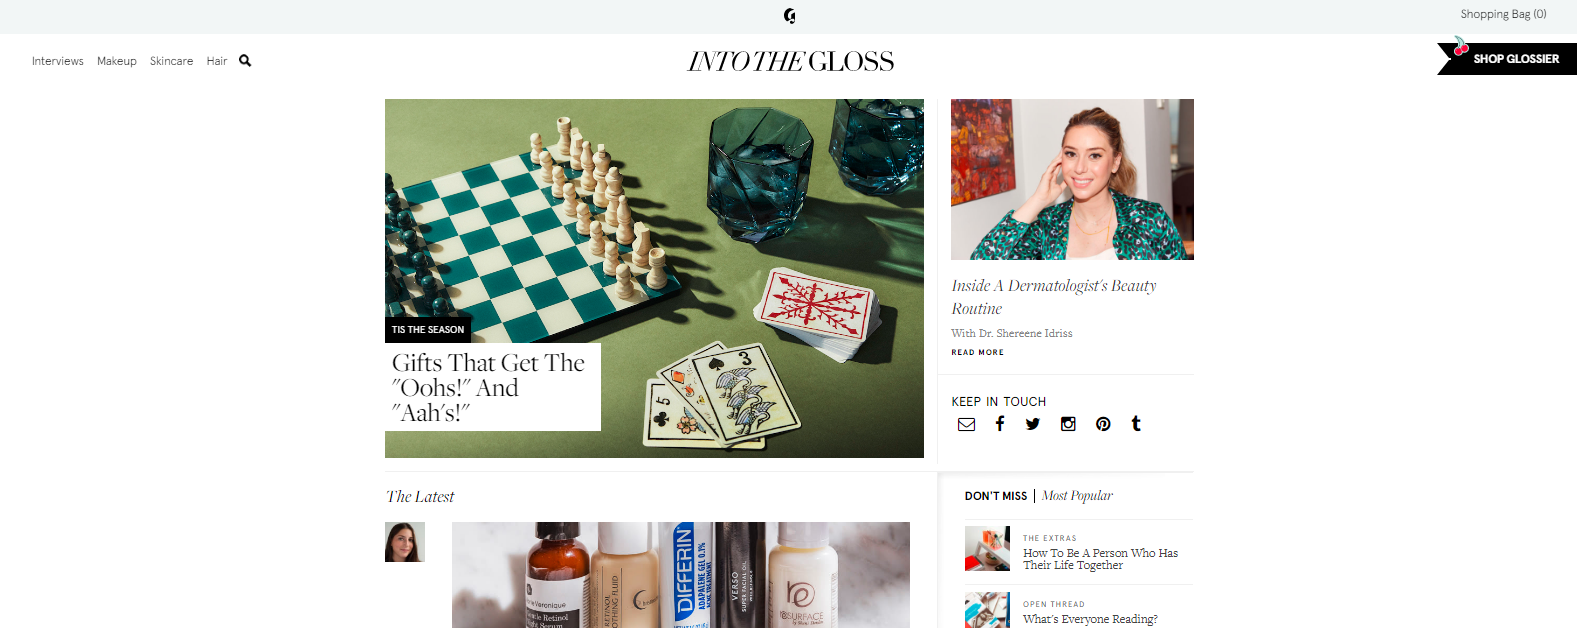 Into the gloss: Style blog and website